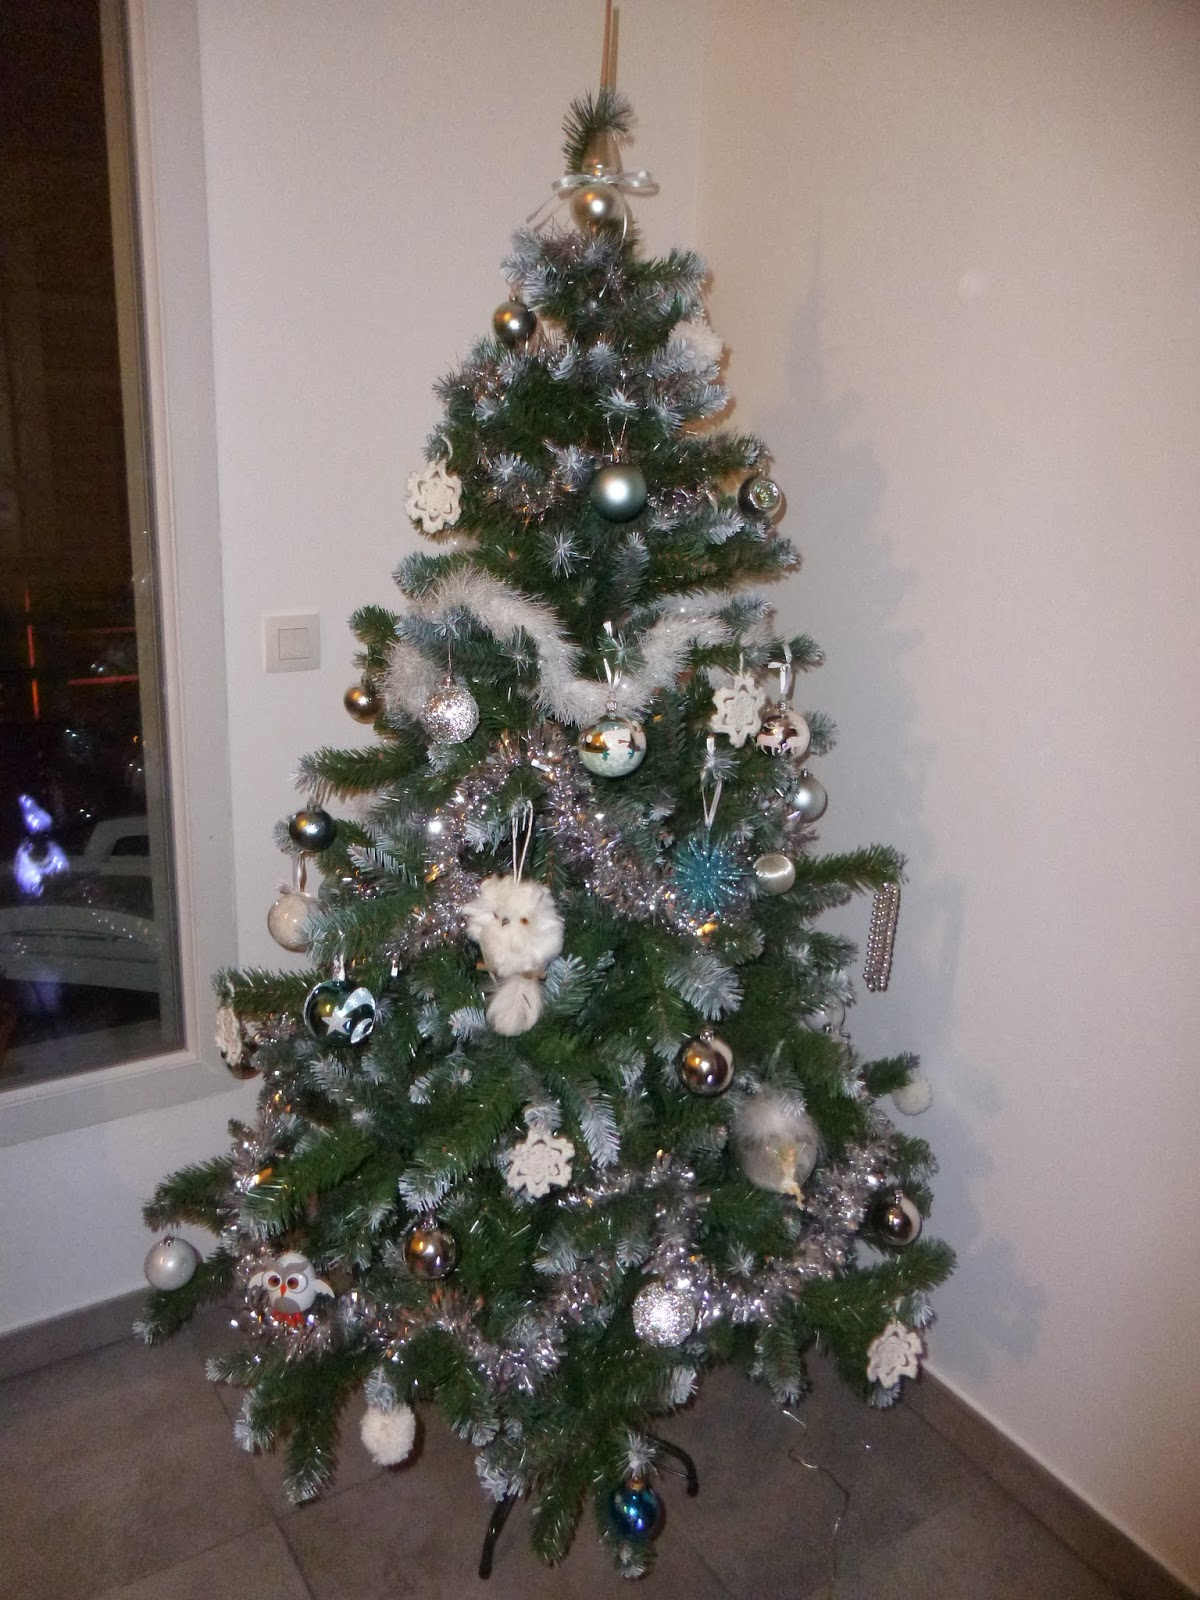 It 39 s christmas time mon beau sapin - Vrai sapin de noel ...